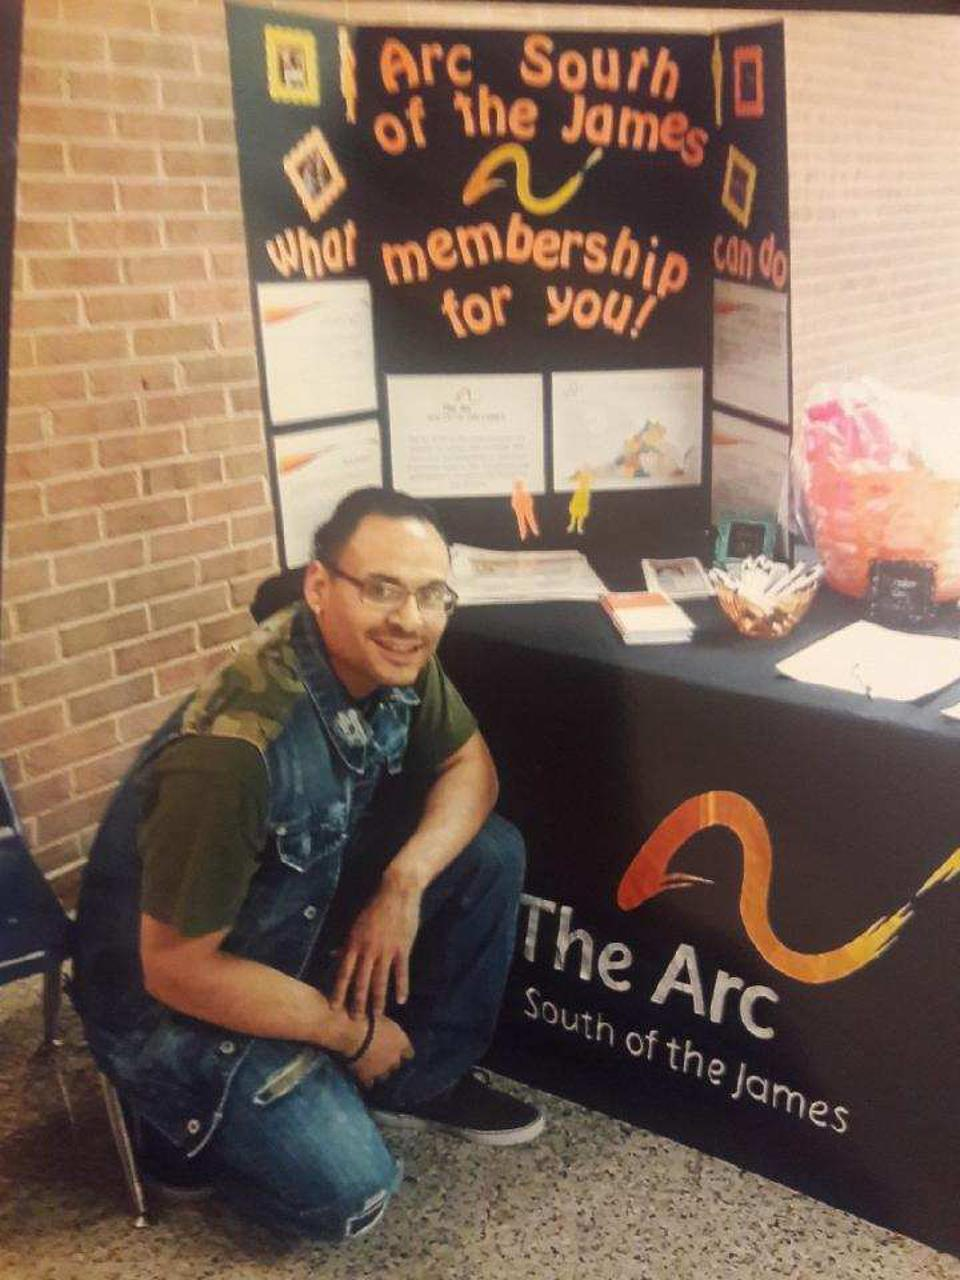 Richard Cuevas kneeling in front of a booth for The Arc South of the James, his self advocacy group.